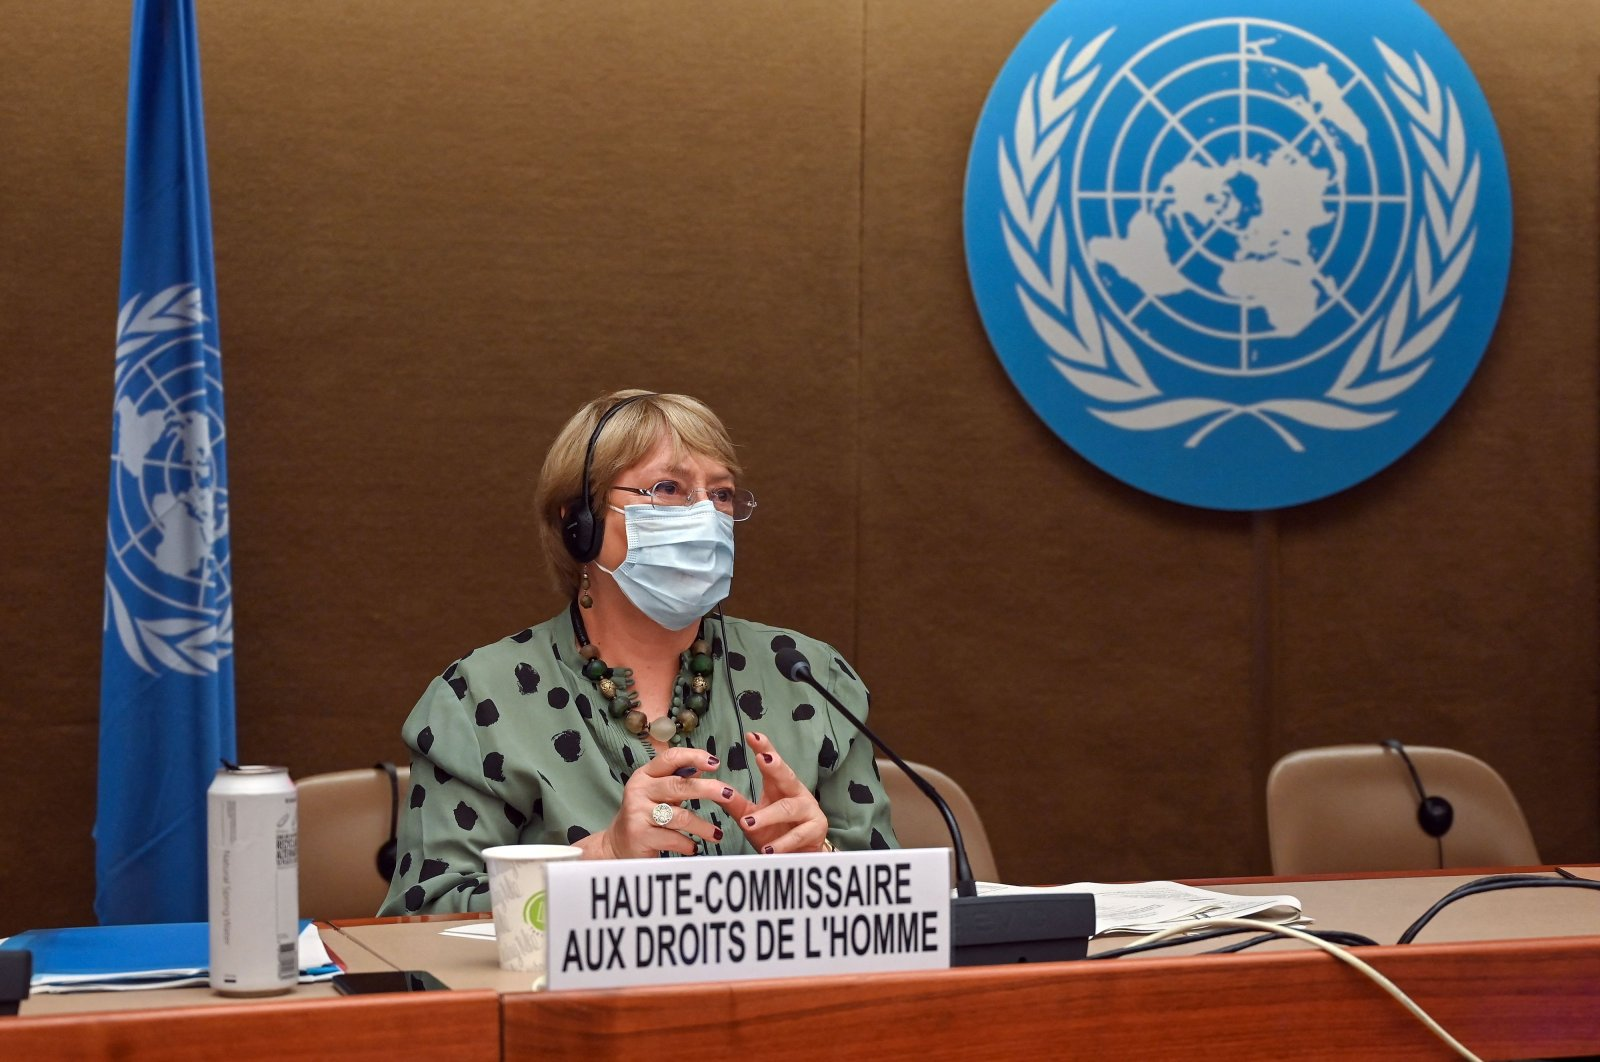 United Nations High Commissioner for Human Rights Michelle Bachelet looks on after delivering a speech on global human rights developments during a session of the Human Rights Council in Geneva, Switzerland, on June 21, 2021. (AFP Photo)